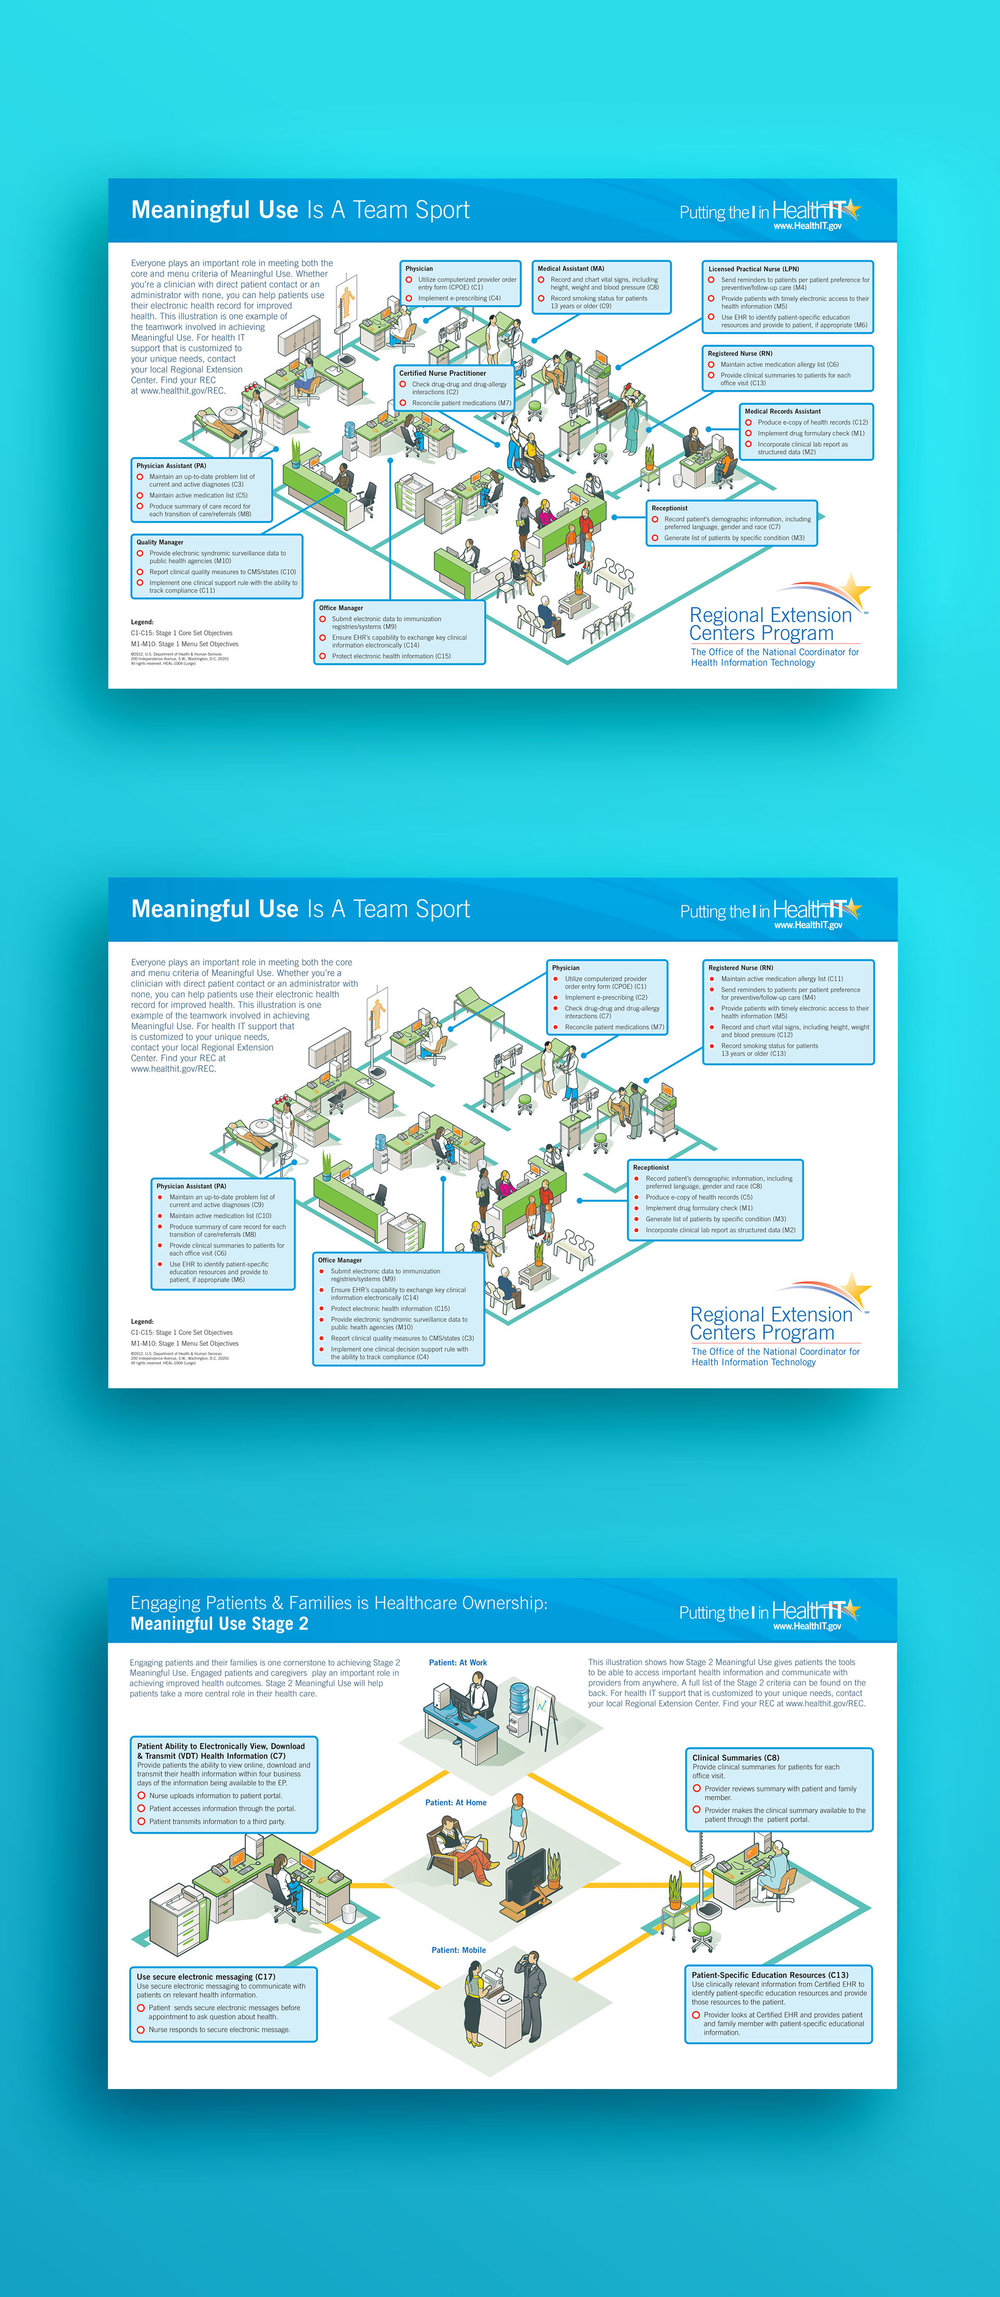 Sample posters for large and small providers, for various Meaningful Use stages